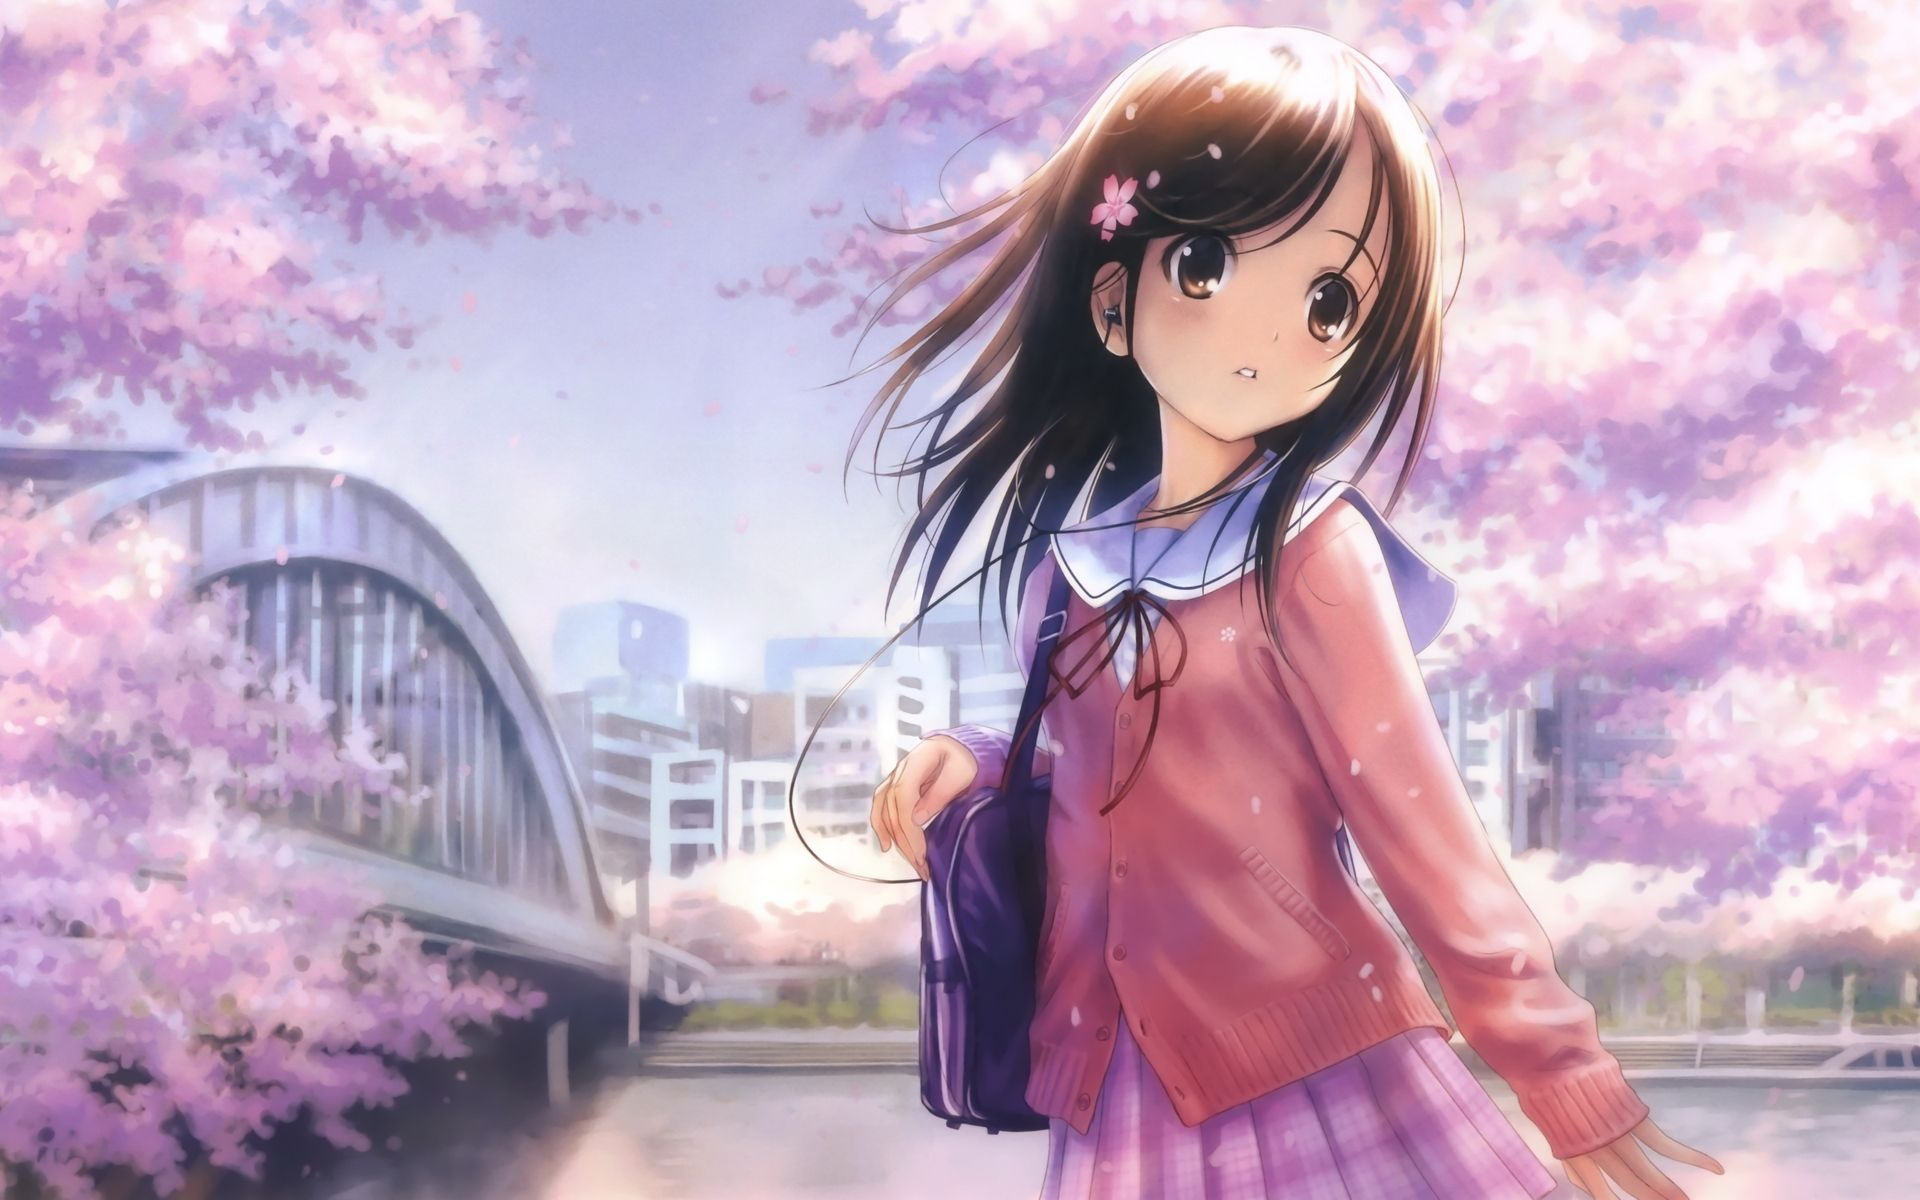 cute anime girl hd wallpapers - free download latest cute anime girl